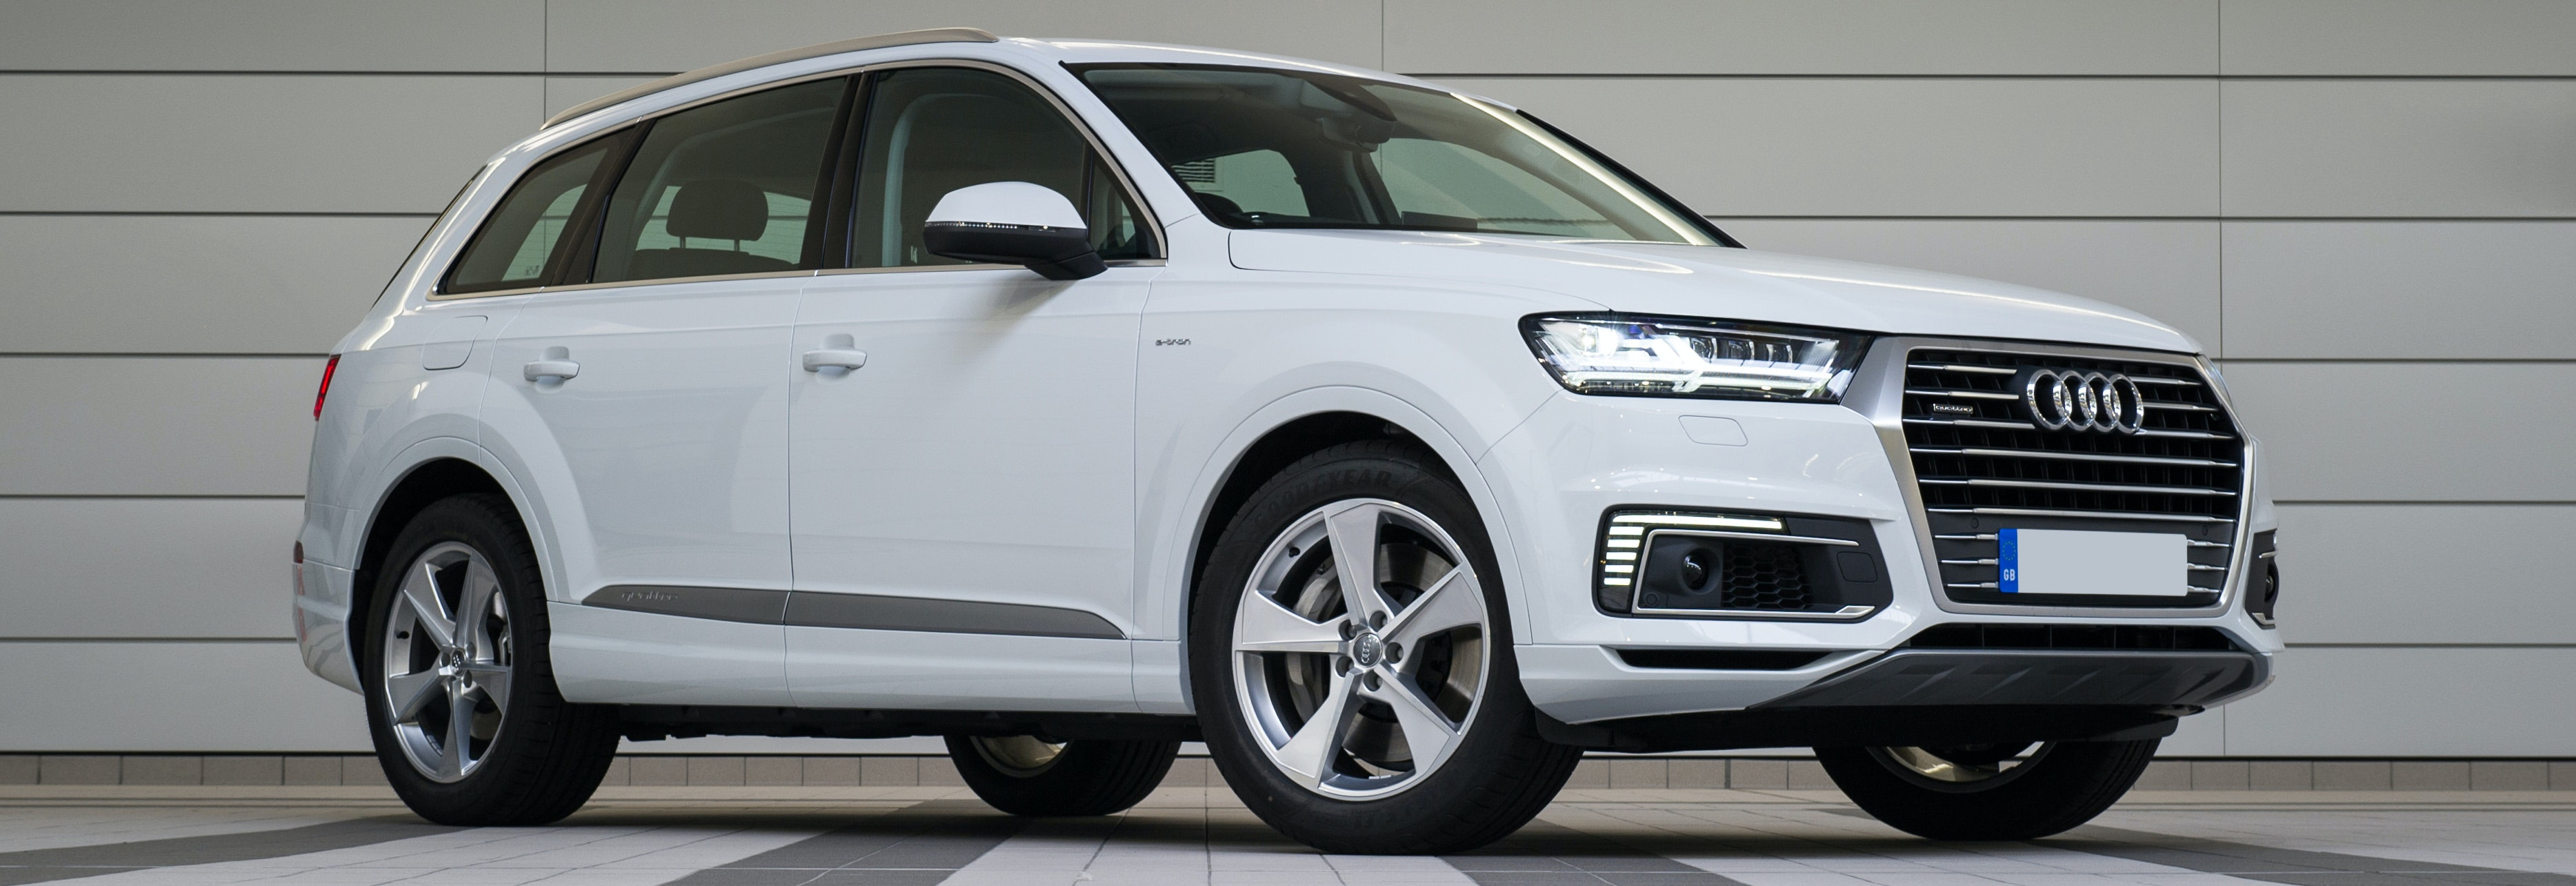 White Audi Q7 Parked, Viewed From The Front